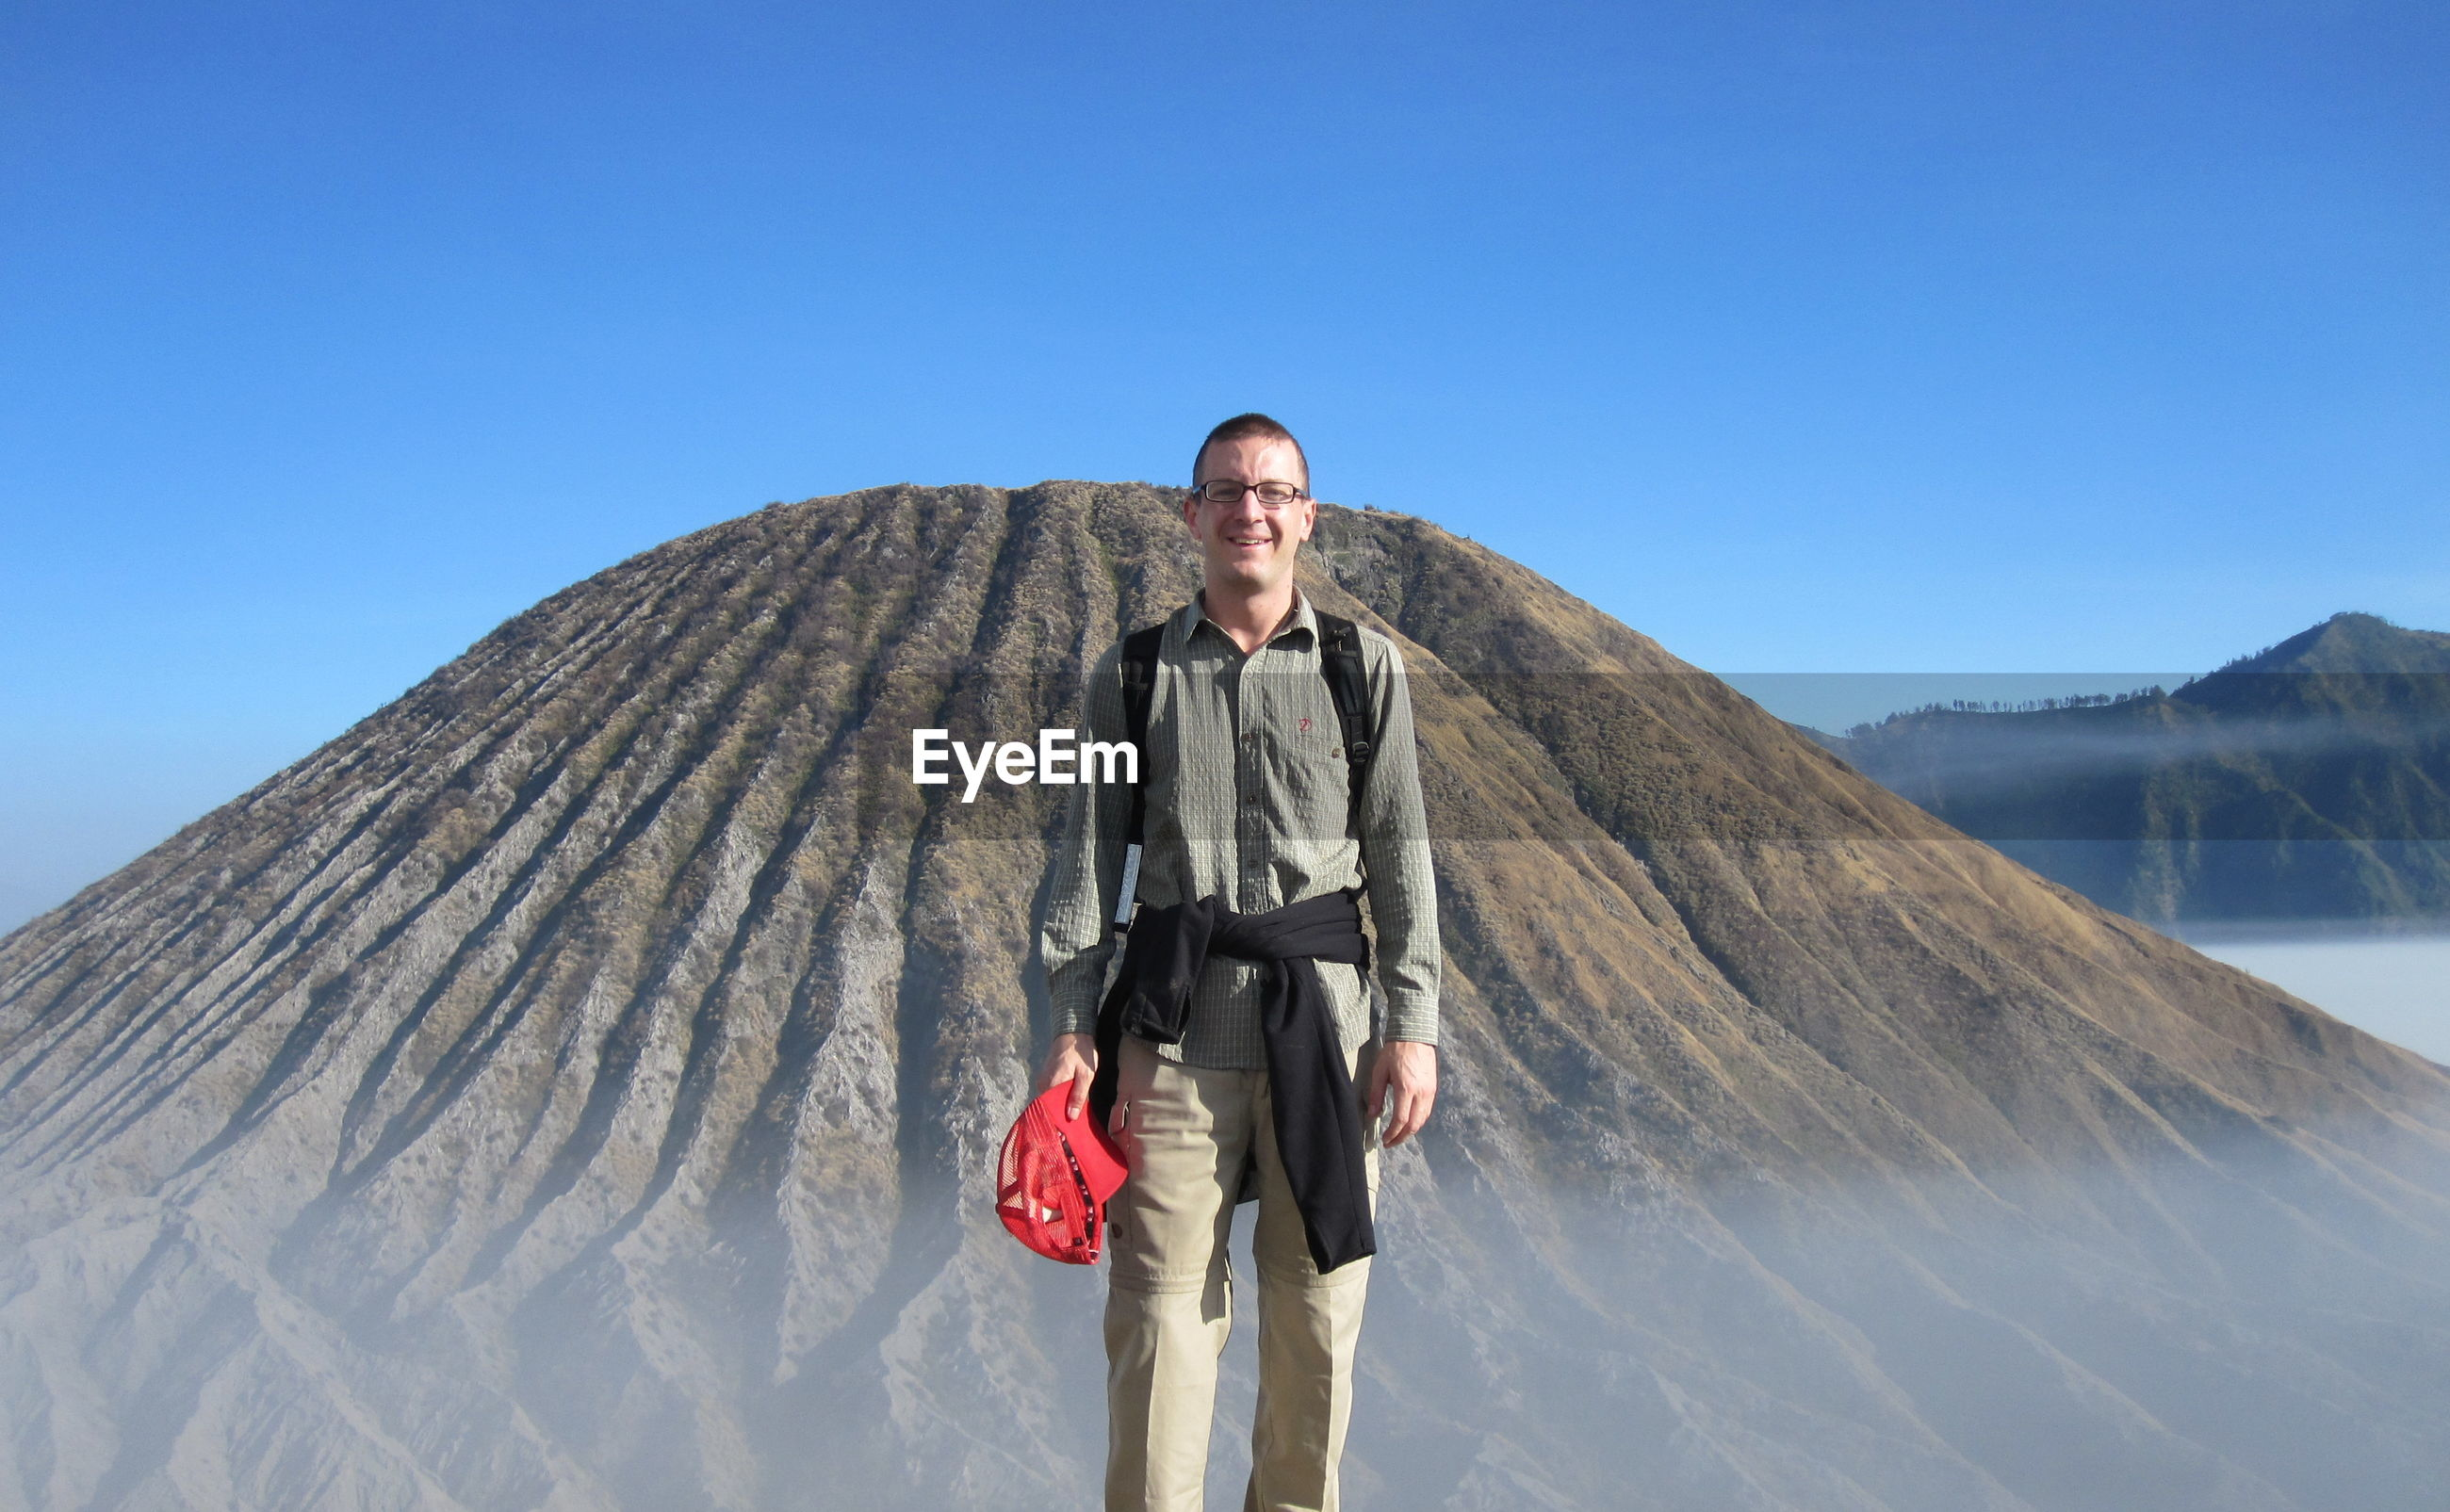 Portrait of man standing against mountain and clear blue sky